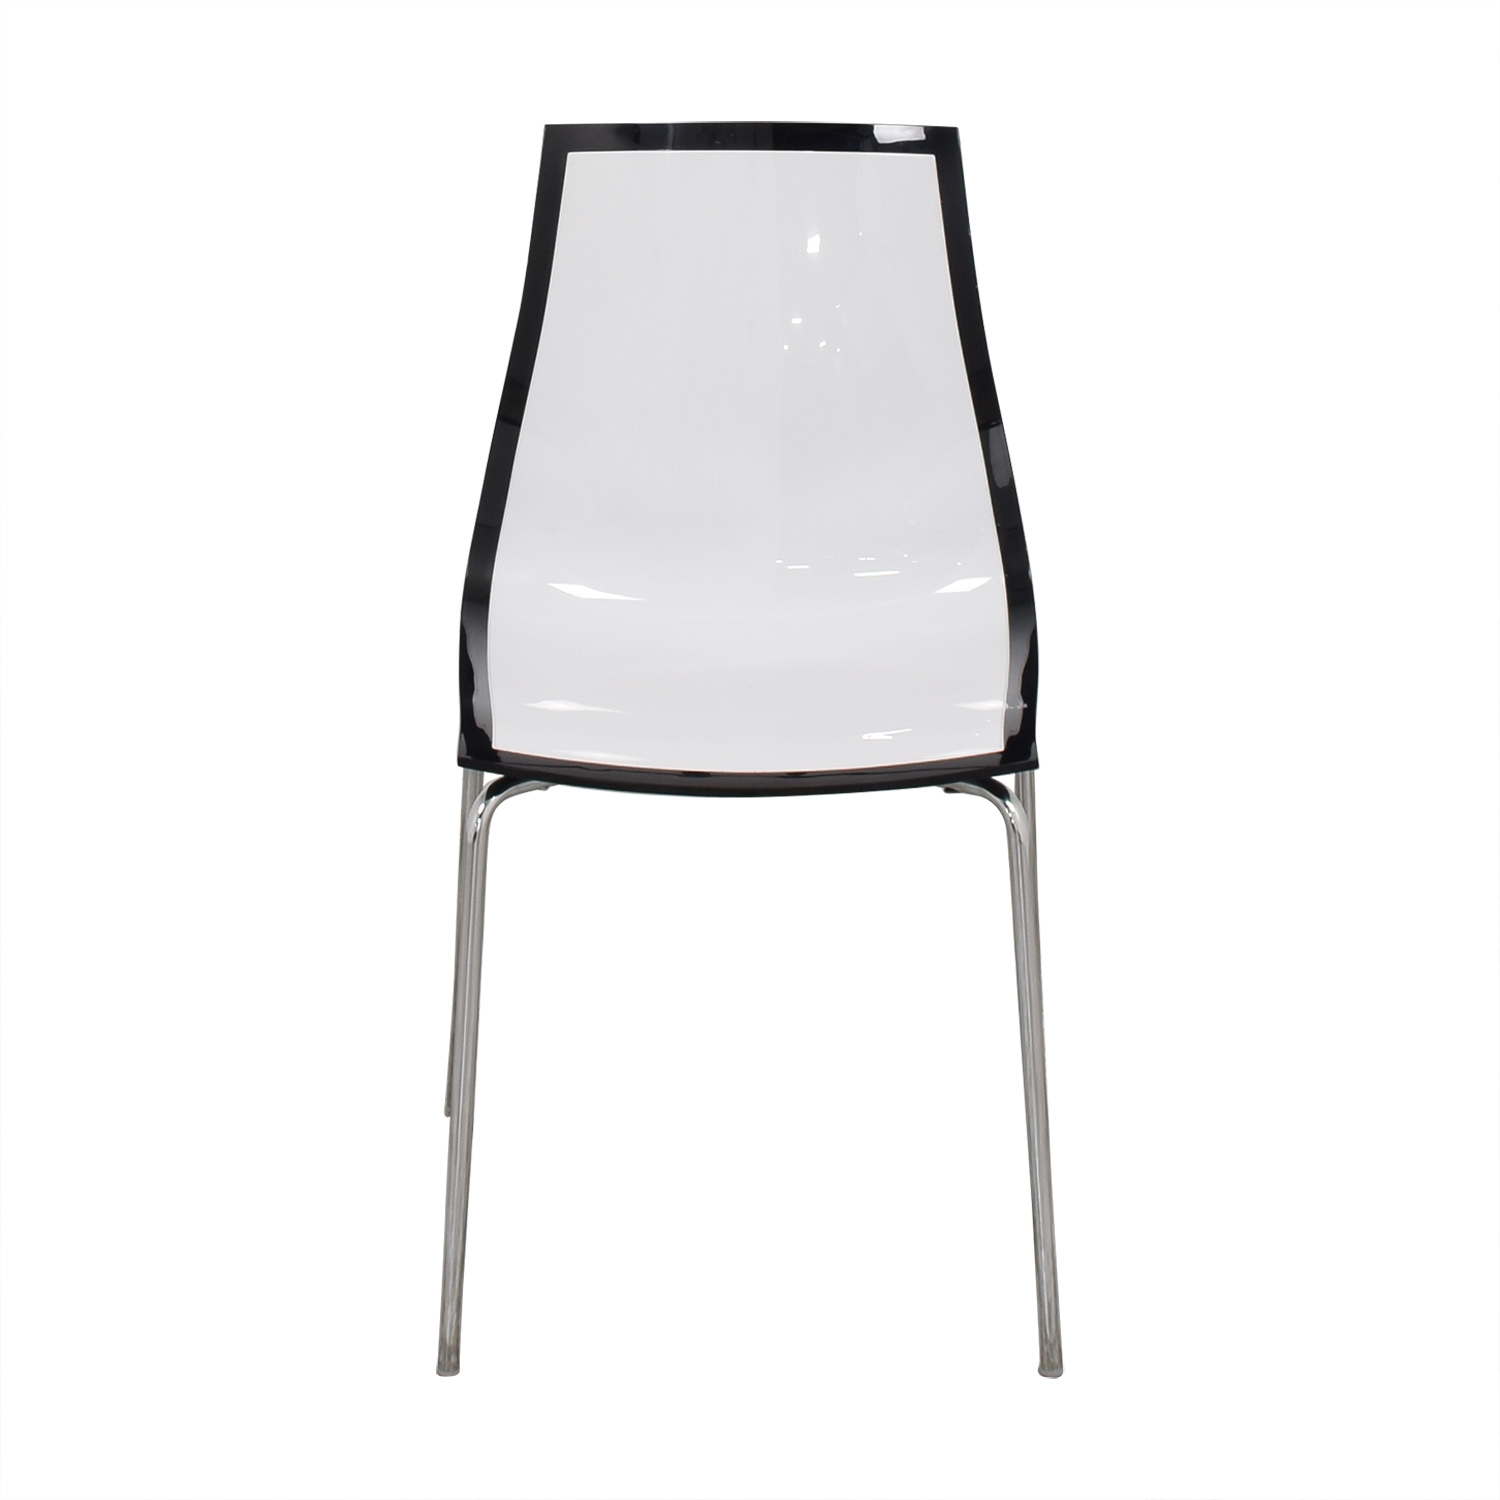 Bontempi Bontempi Casa Lucite Desk Chair black & white